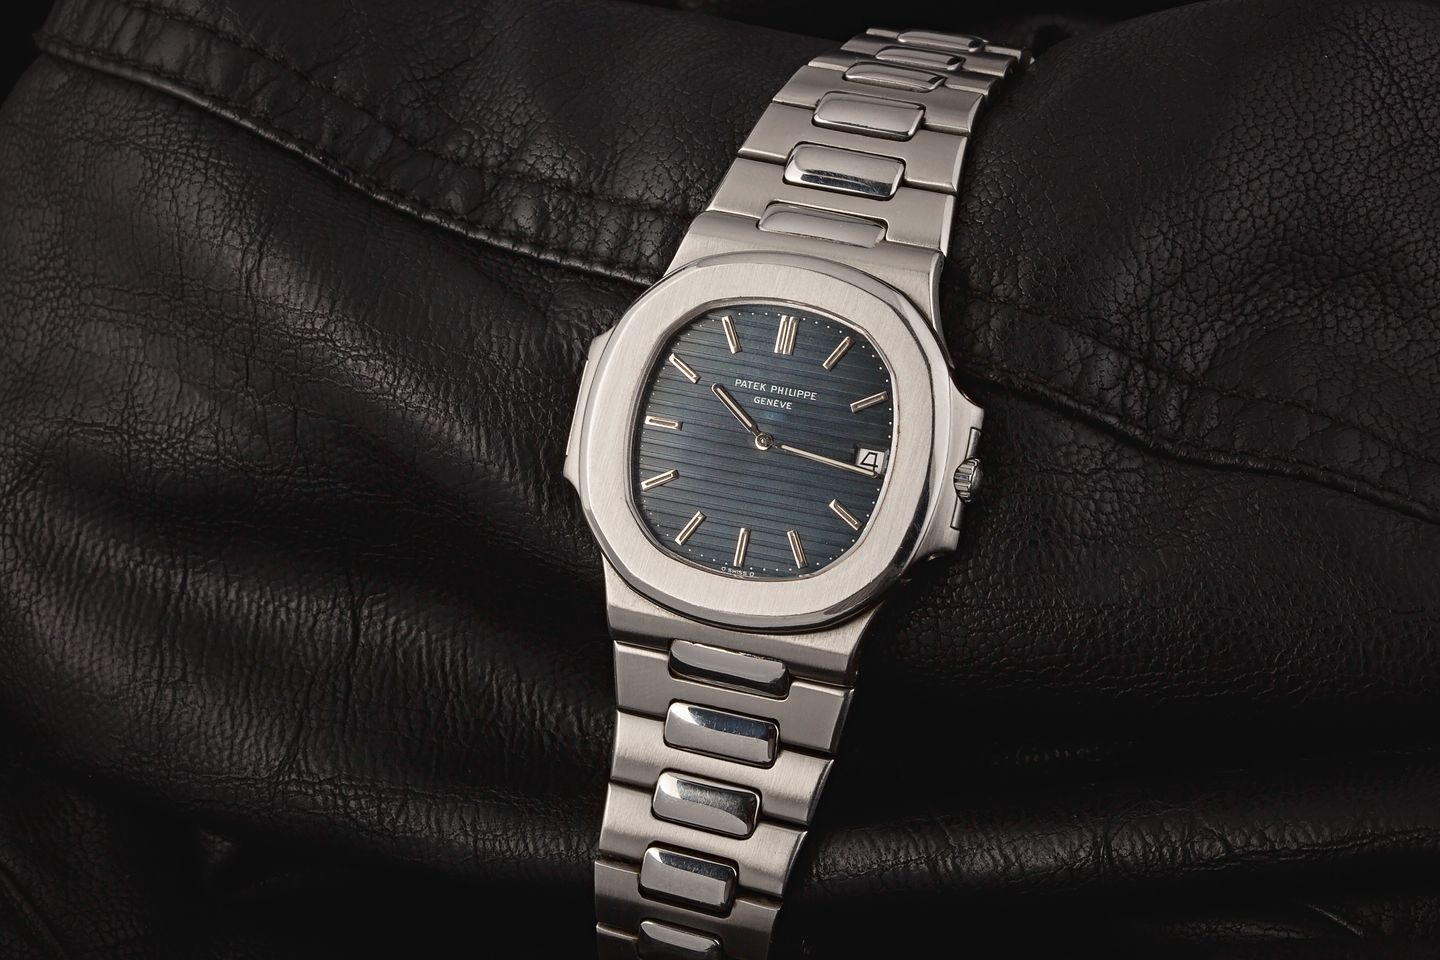 What Makes Patek Philippe So Special?